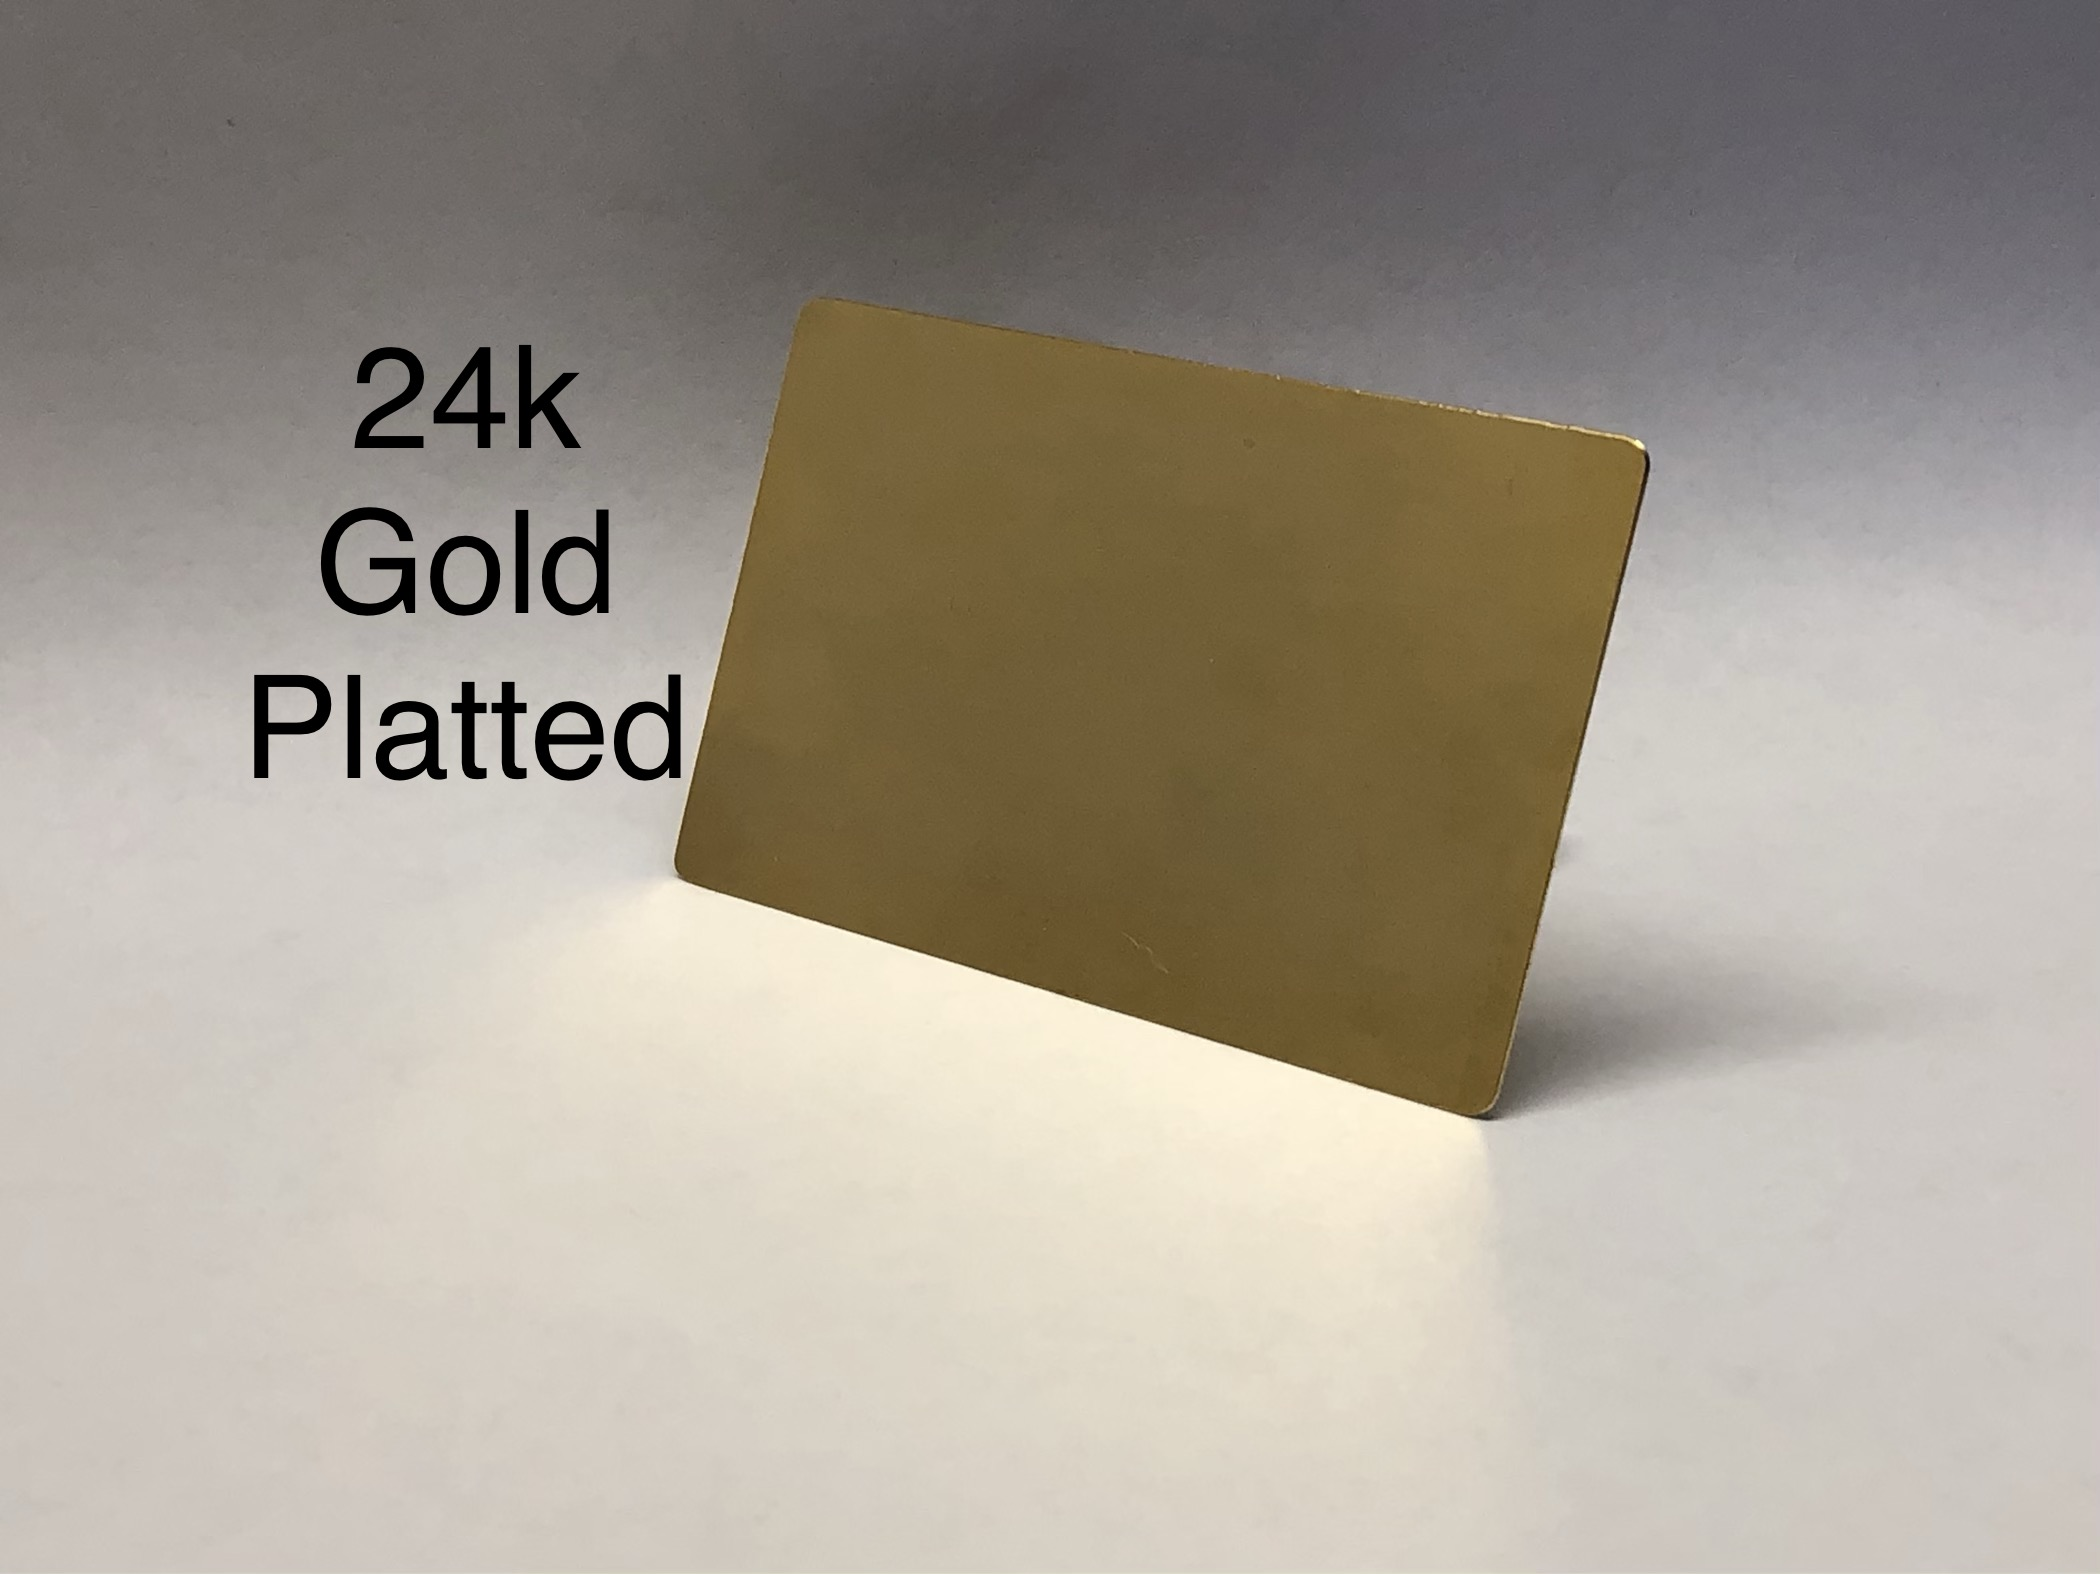 Custom 24k Gold Plated Cards